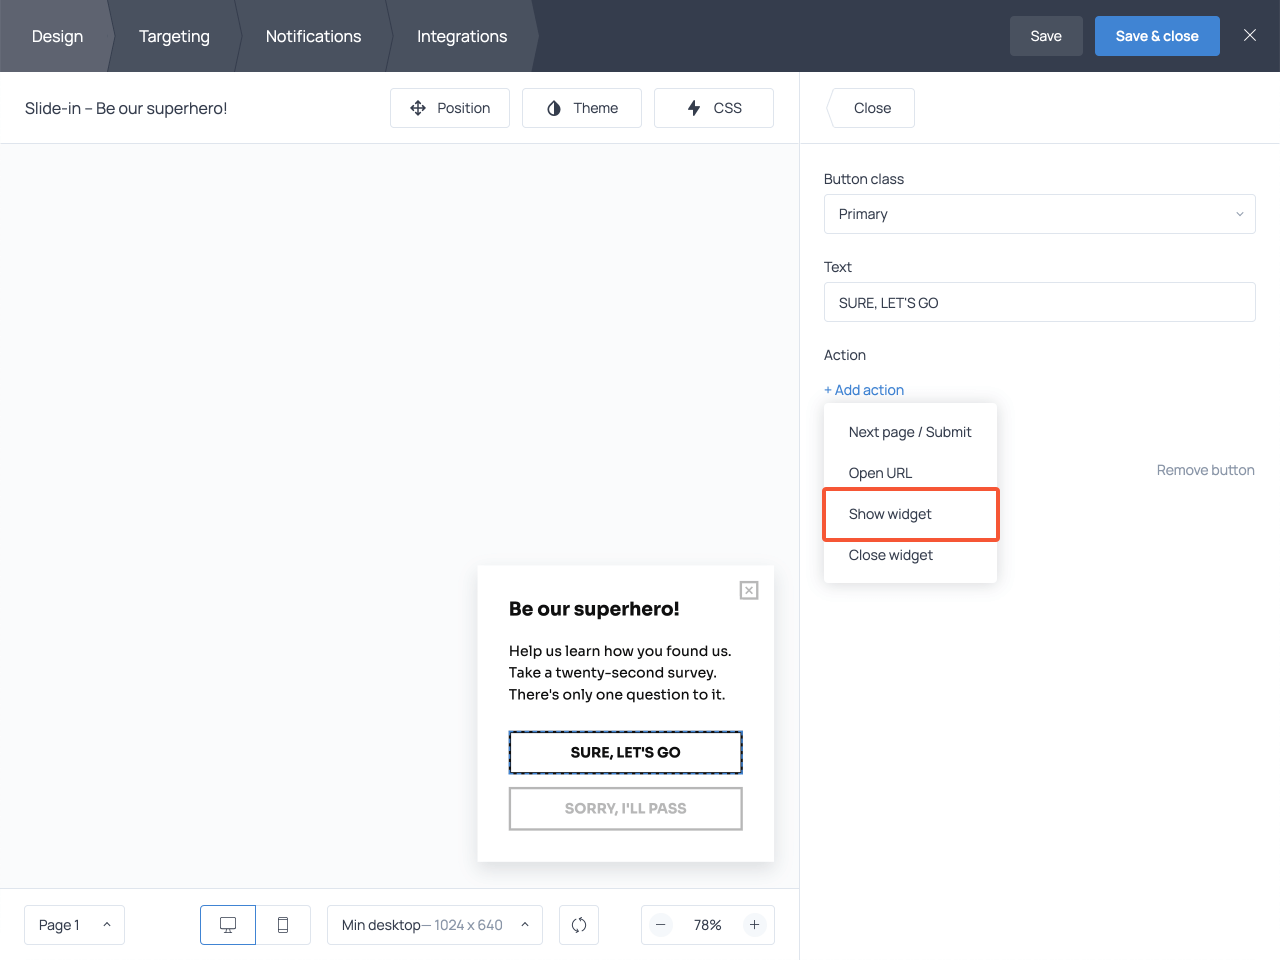 Choosing the Show widget option in the Buttons section